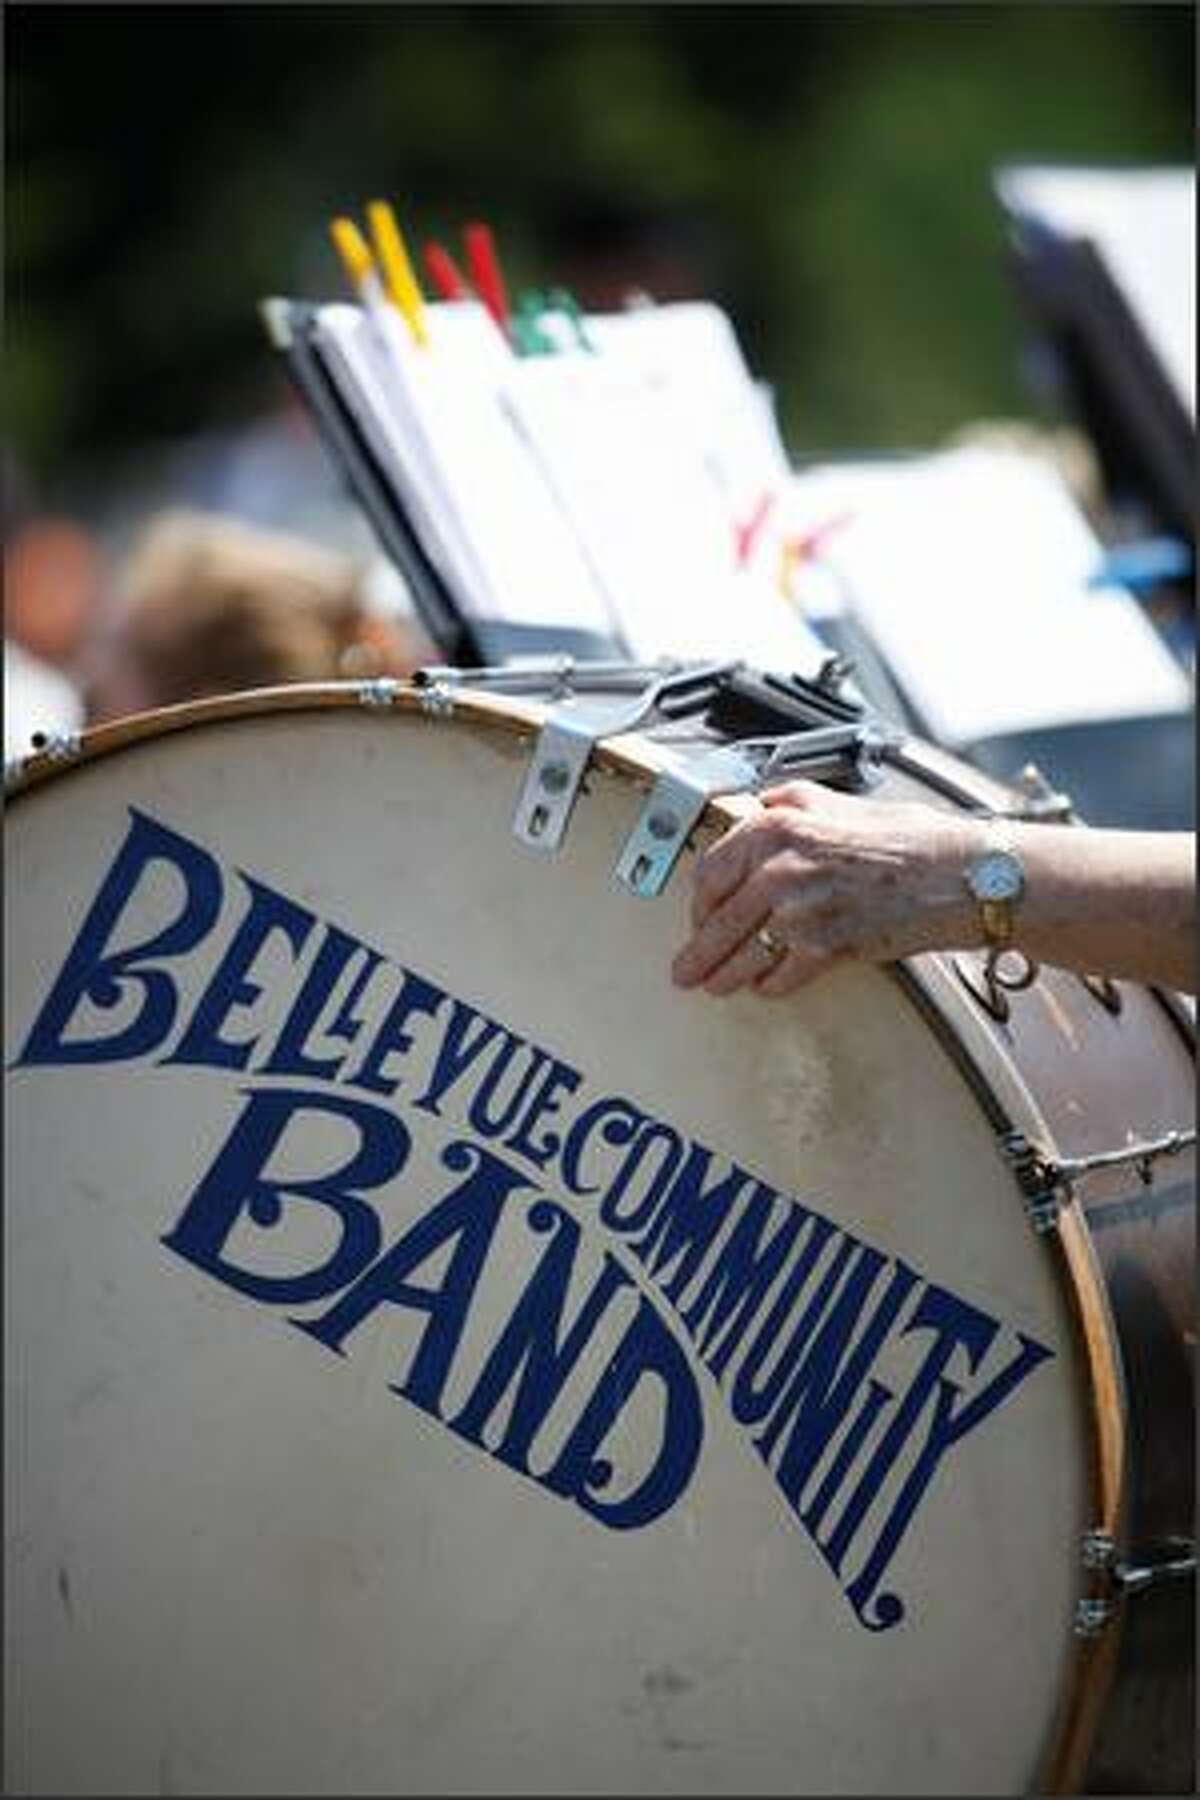 The Bellevue Community Band performs during the Memorial Day celebration Monday at Tahoma National Cemetery in Kent.